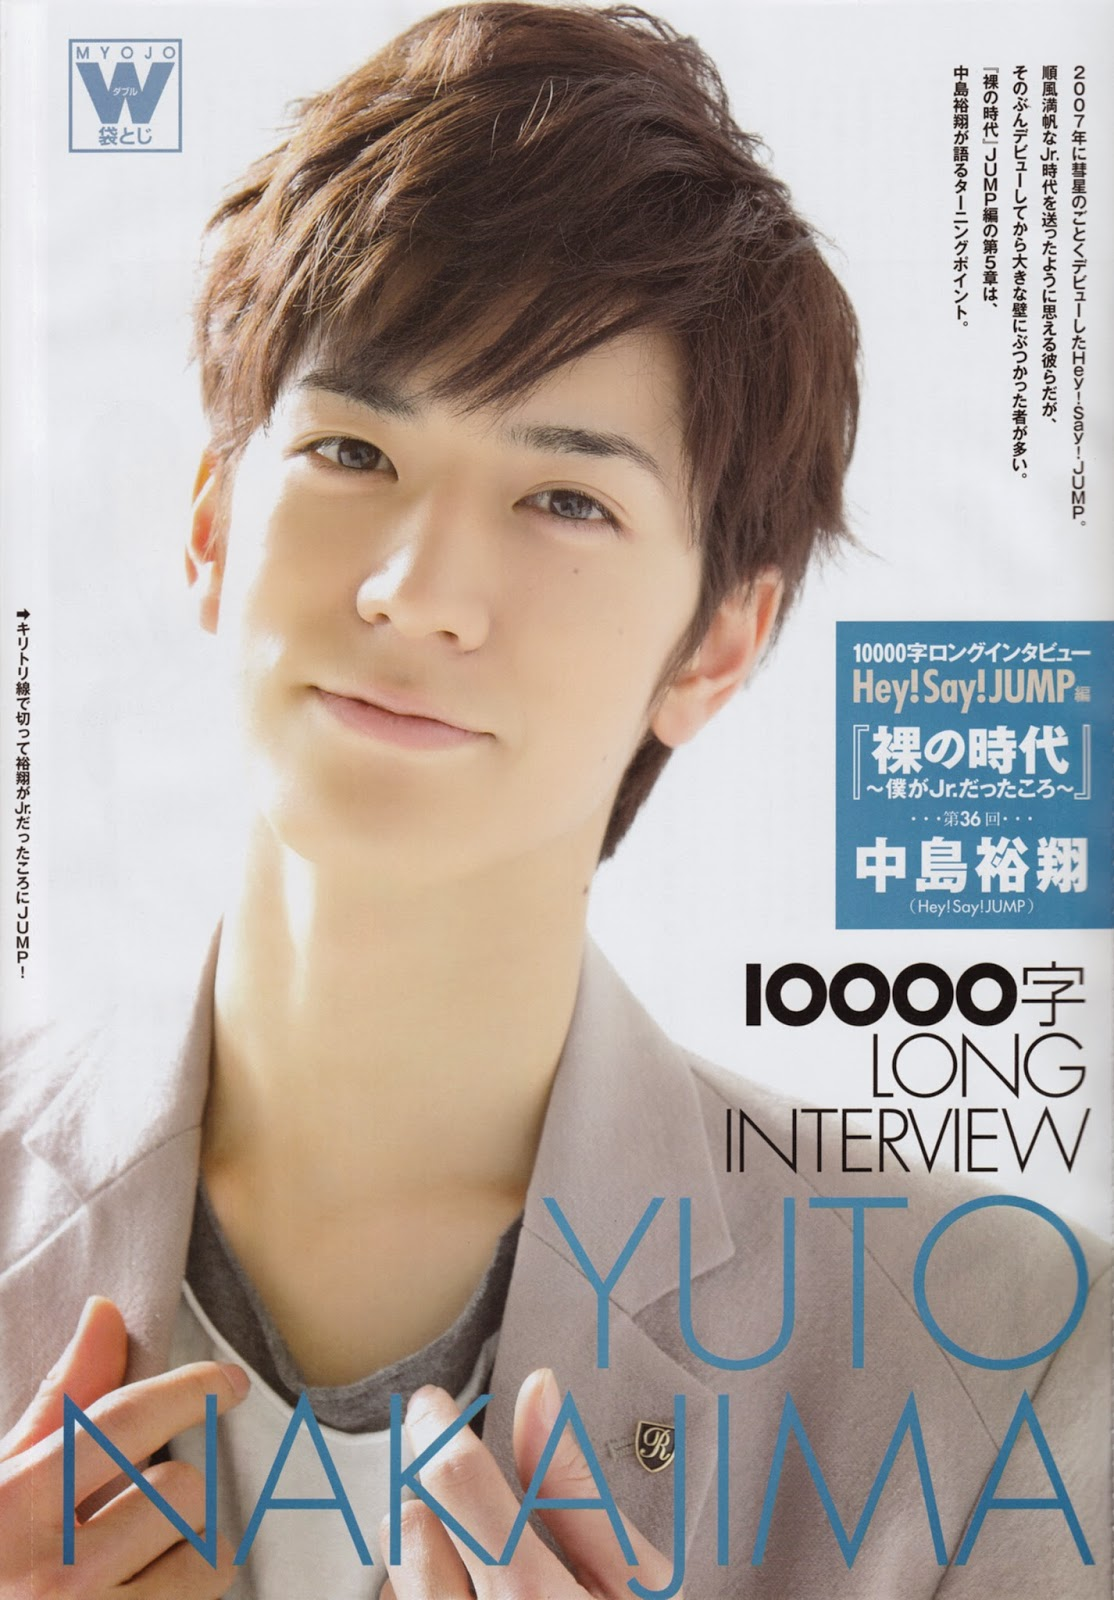 nakajima yuto 10000 long interview